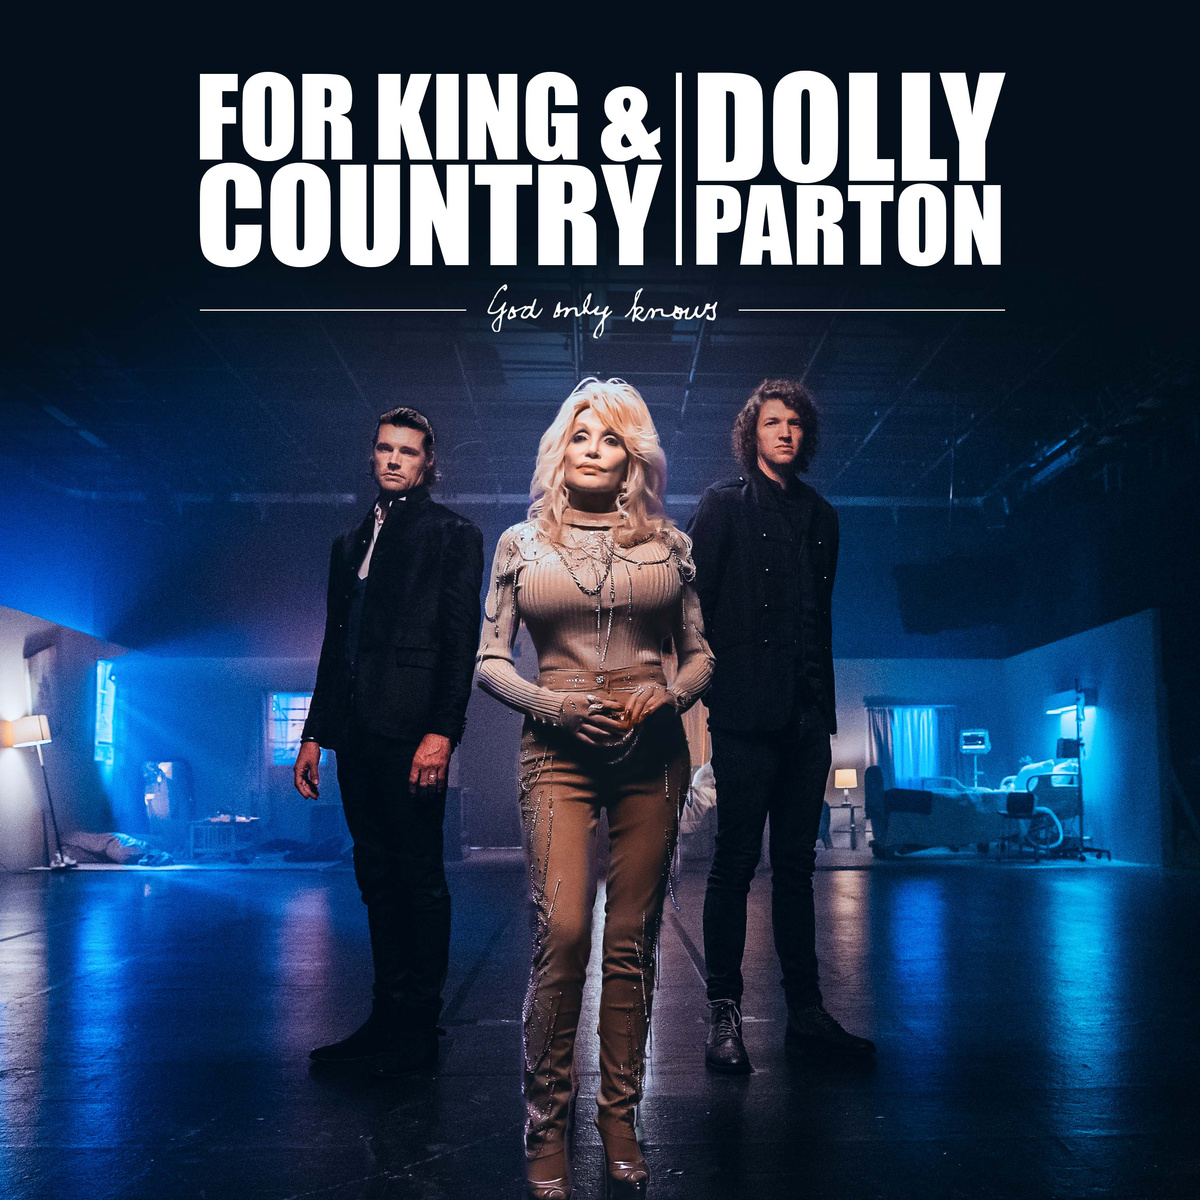 for-king-country-ft-dolly-god-1